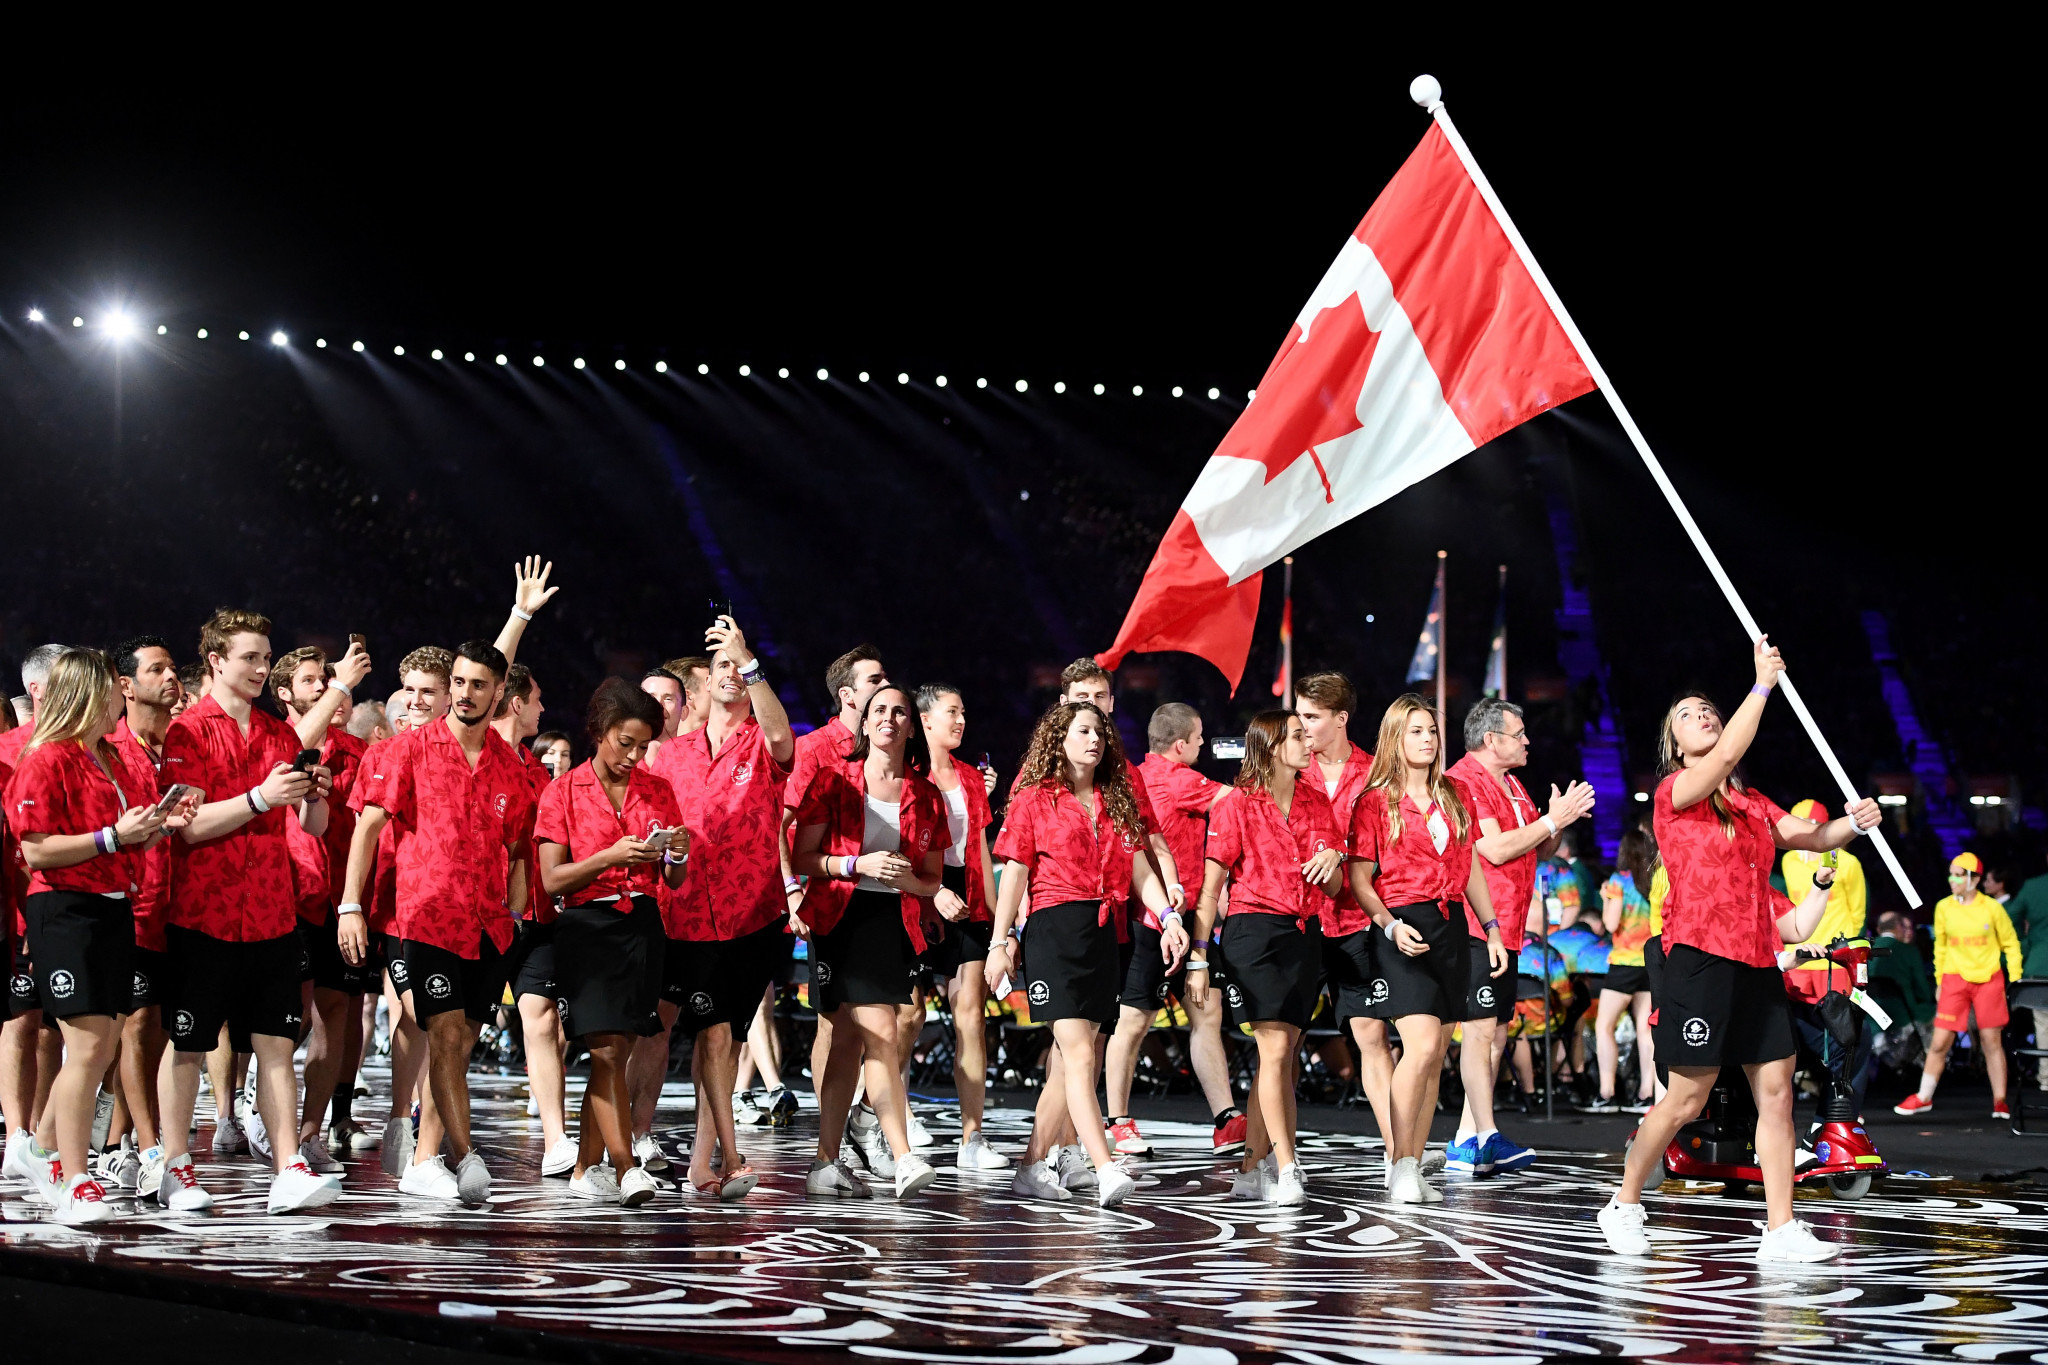 No discussions yet over moving 2026 Commonwealth Games to 2027, says CGF